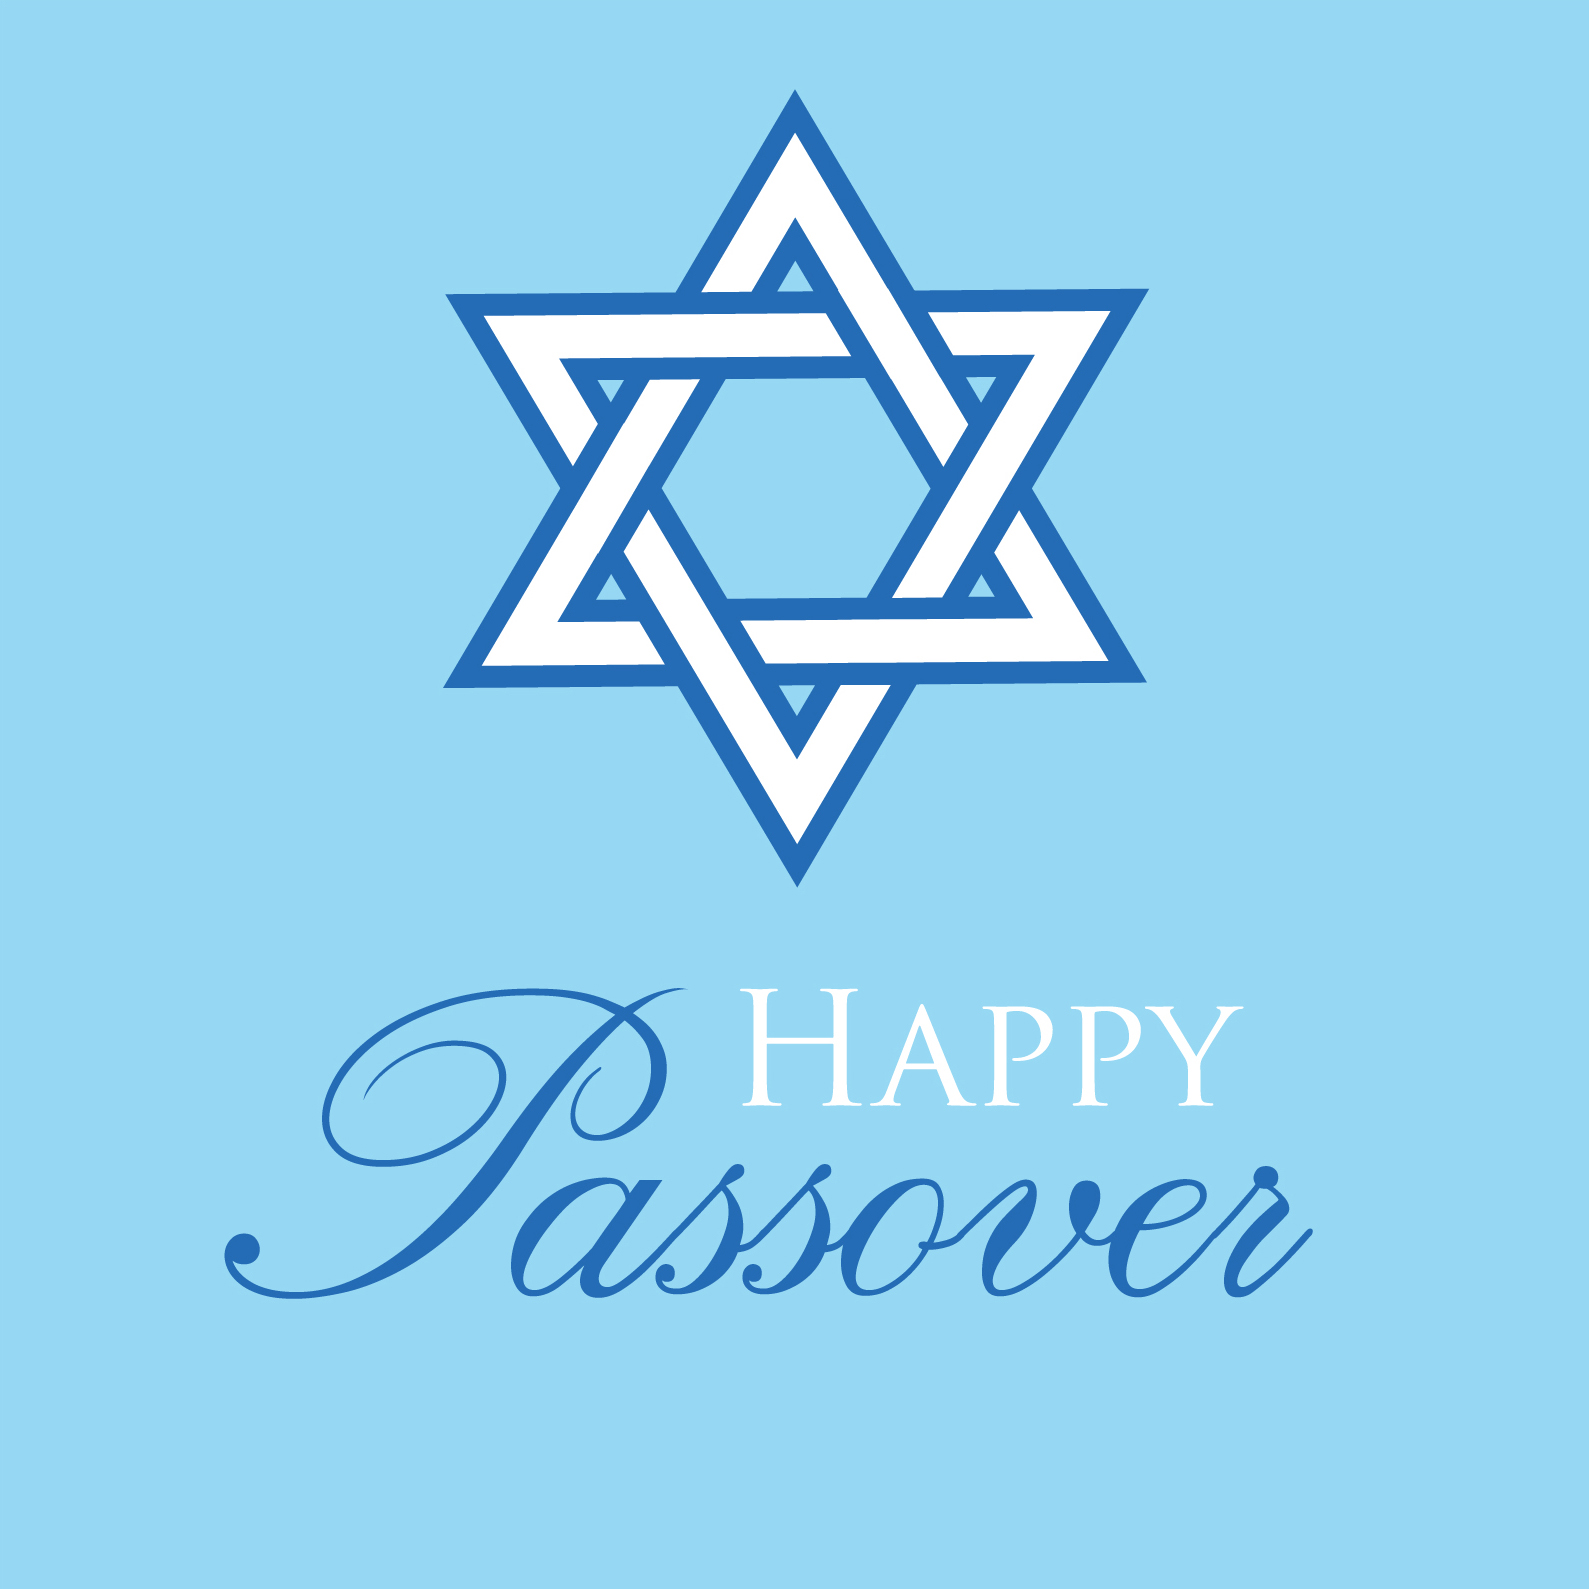 31 adorable passover 2017 wish pictures and photos happy passover star card m4hsunfo